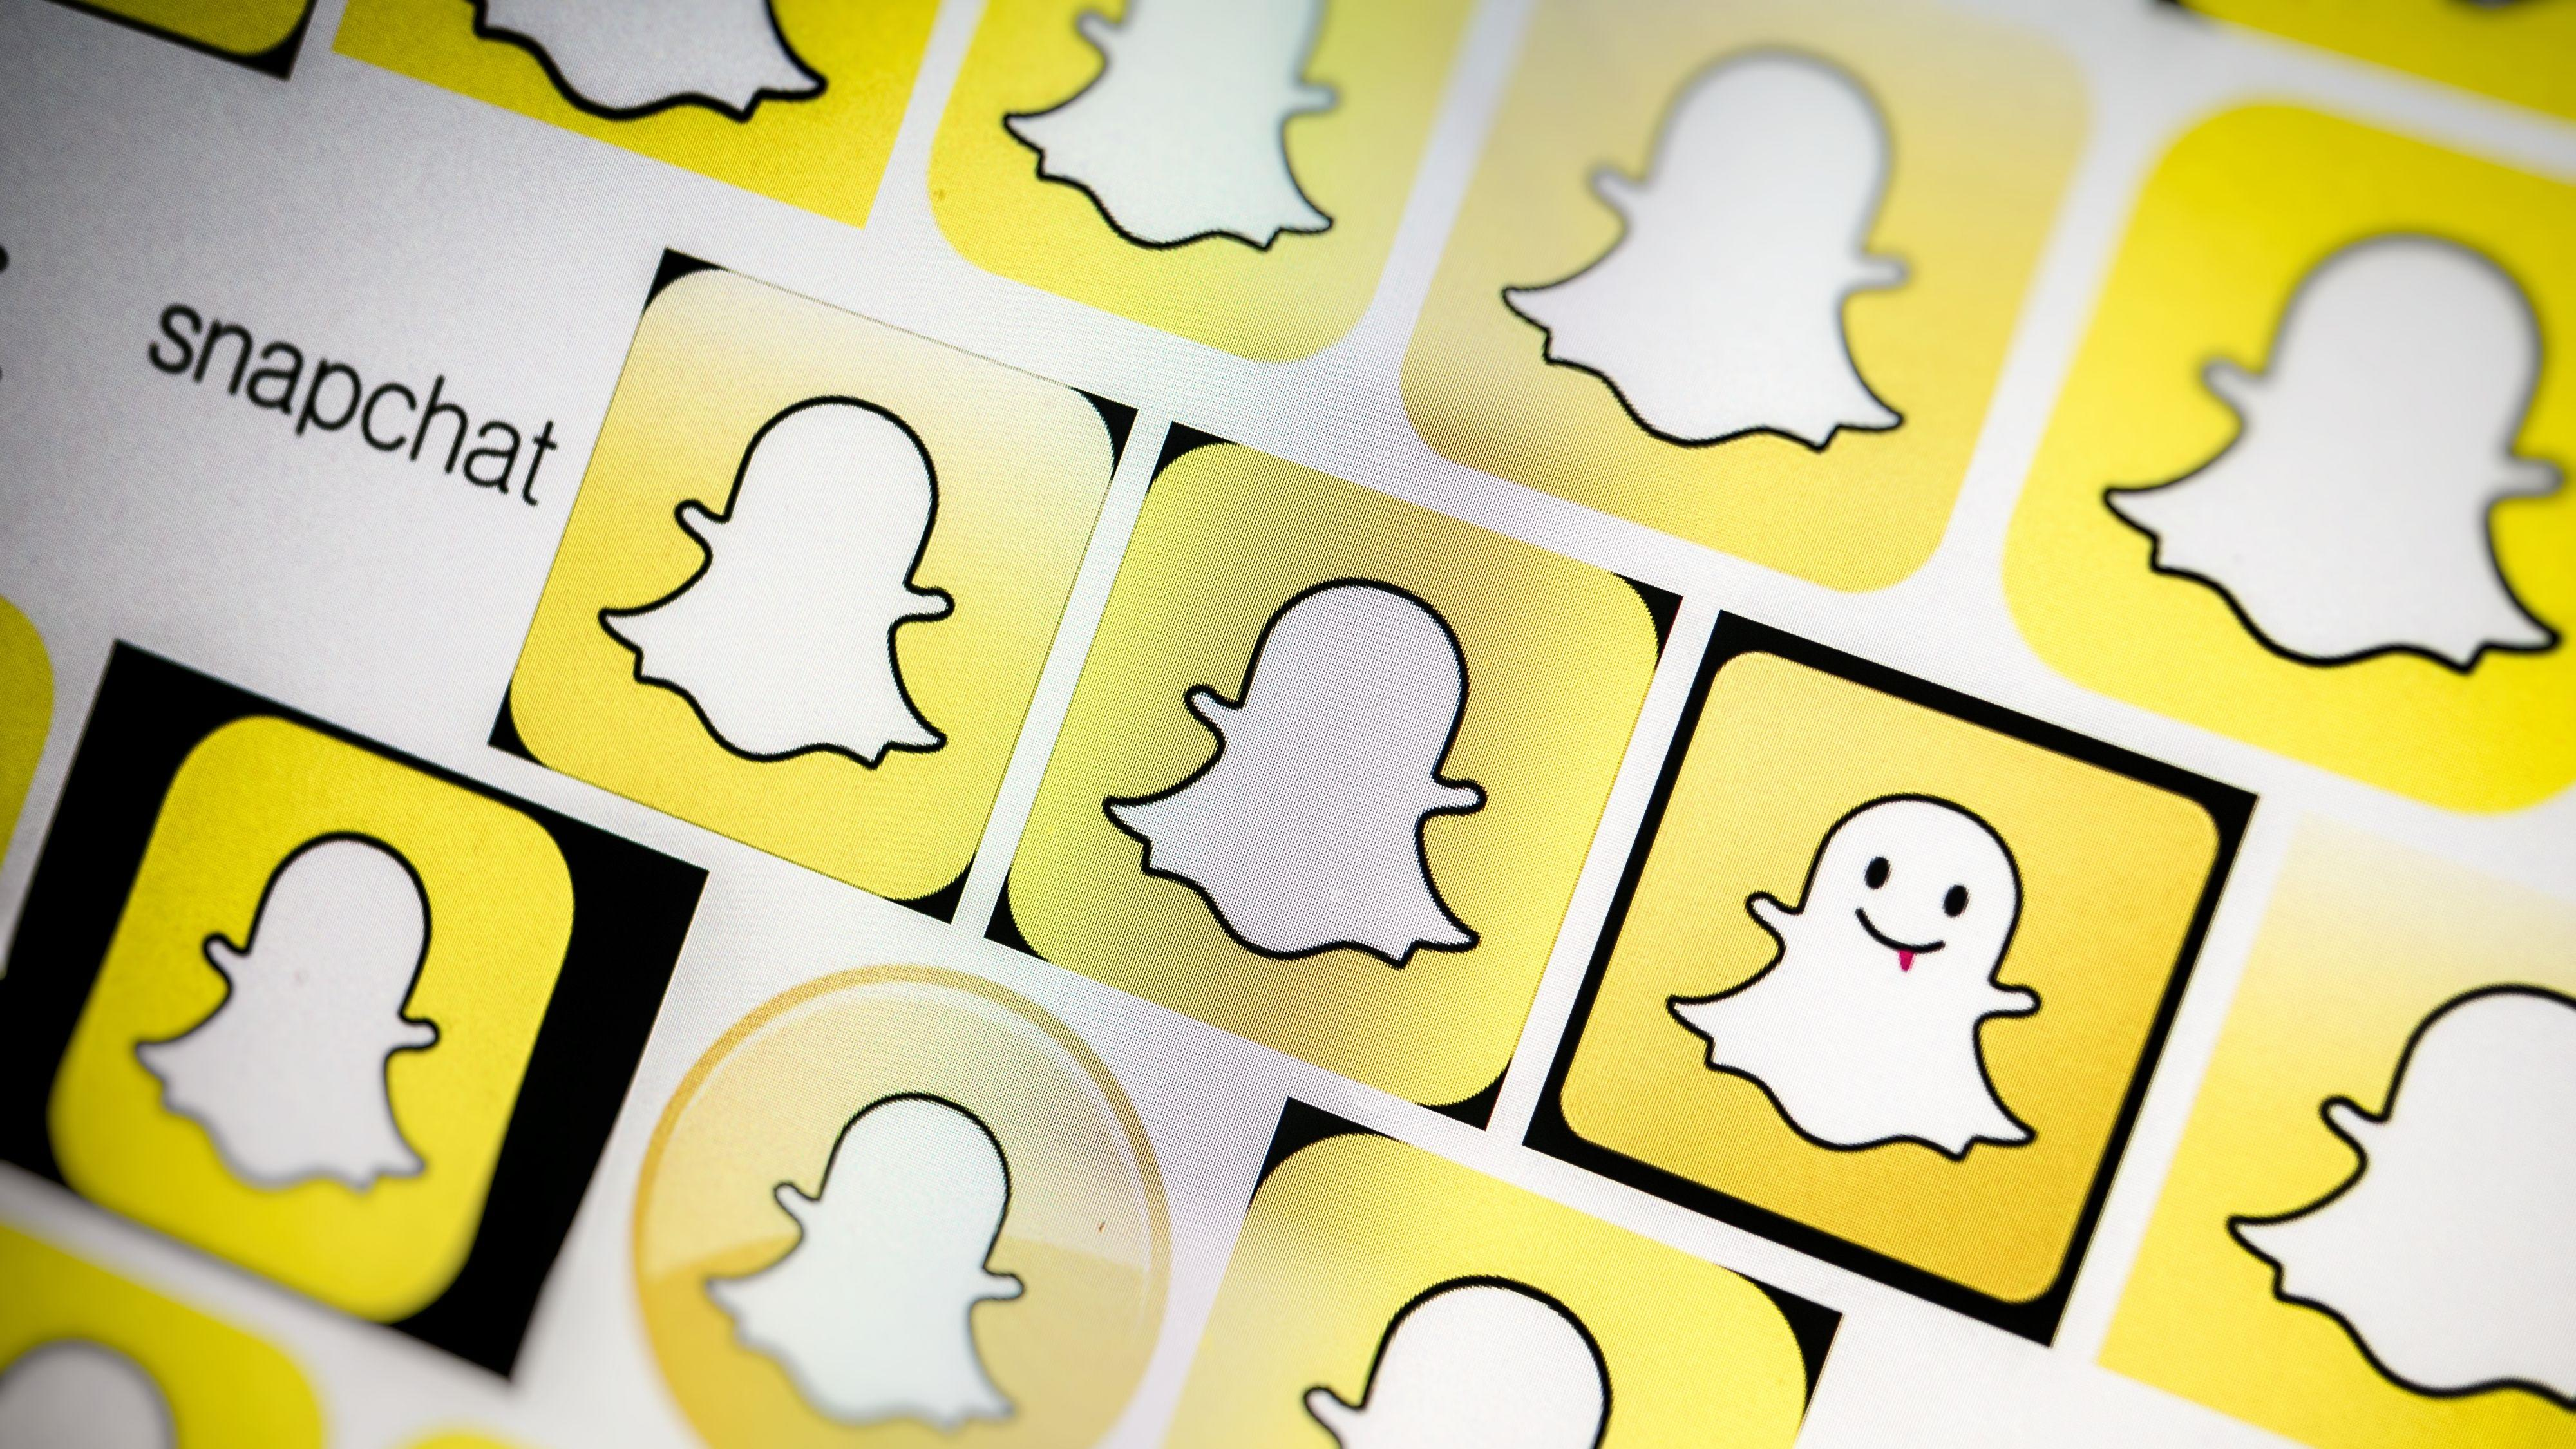 Snapchat Shutters Original Content Channel, Lays Off Team